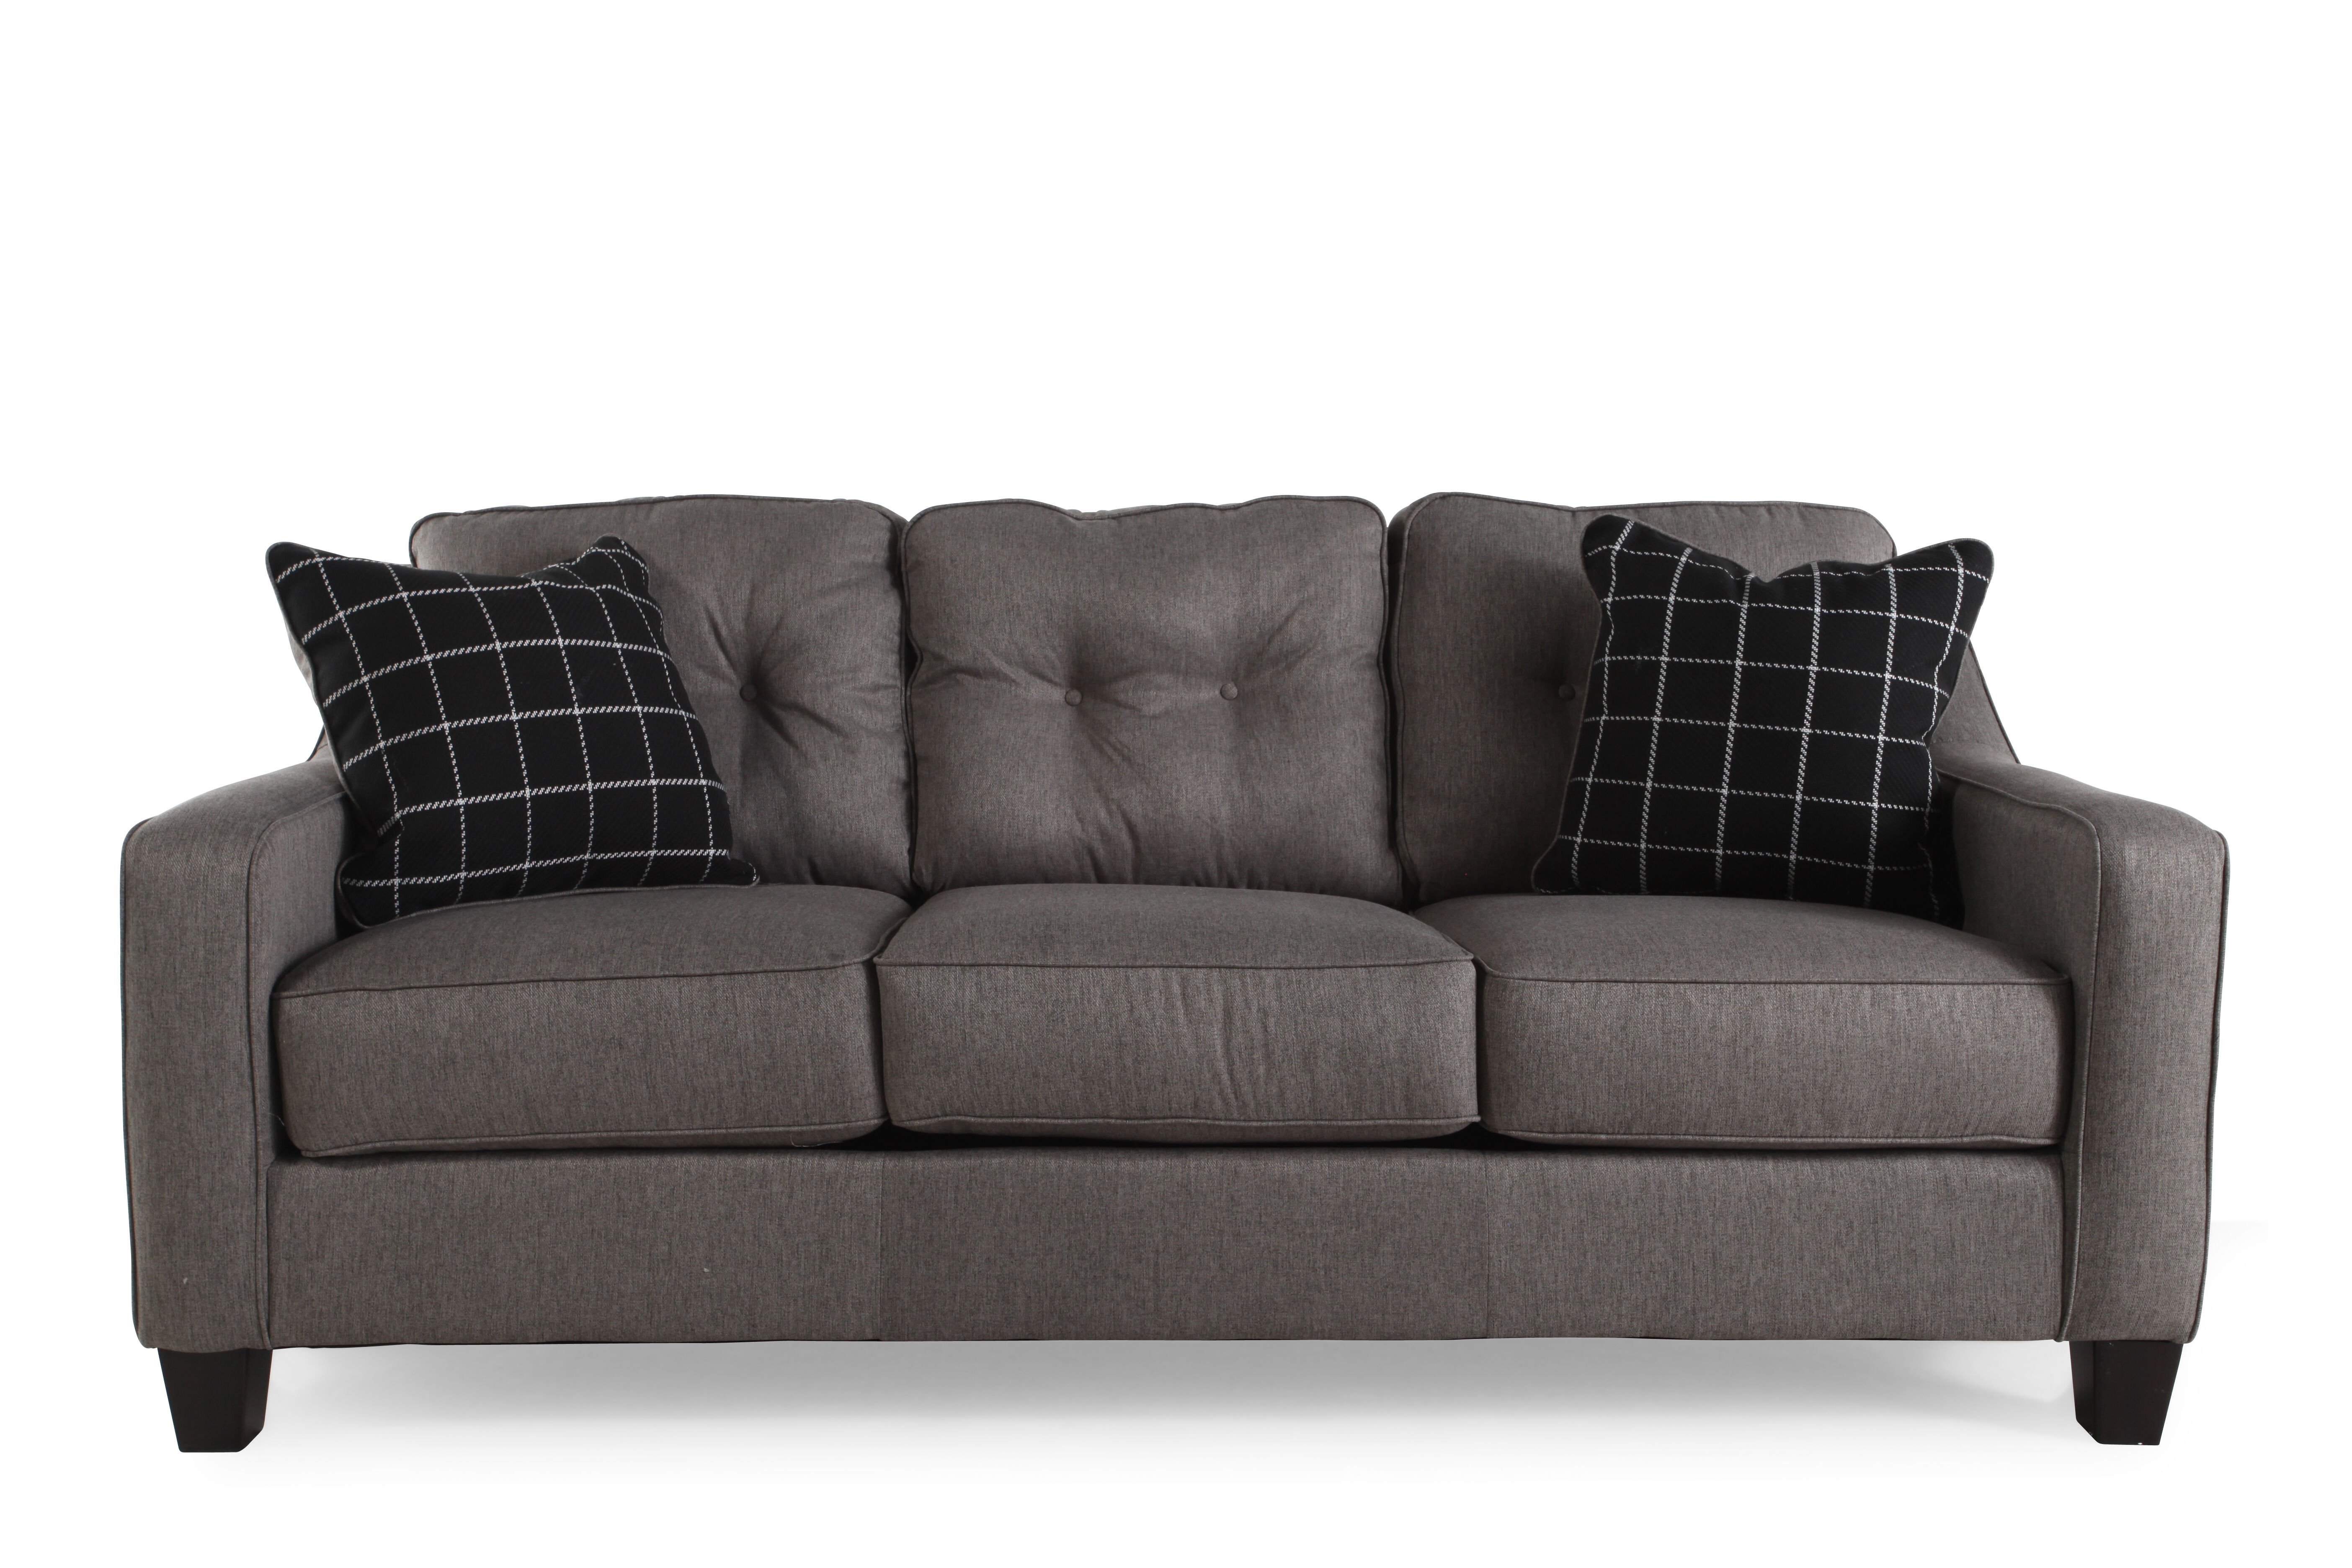 Contemporary ButtonTufted 80 Sofa in Charcoal  Mathis